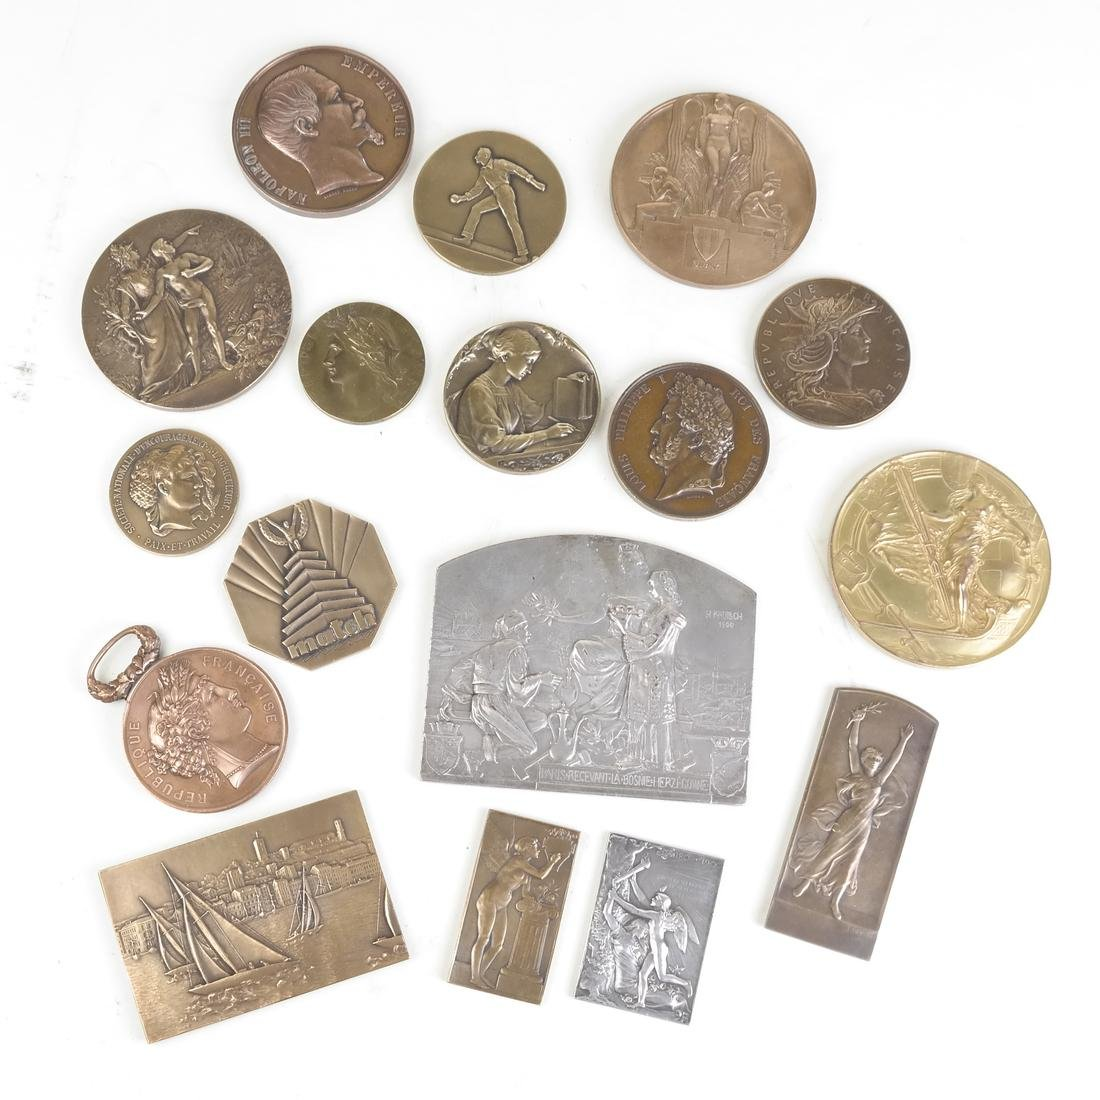 STUDY COLLECTION OF FRENCH AWARD MEDALS AND PLAQUETTES